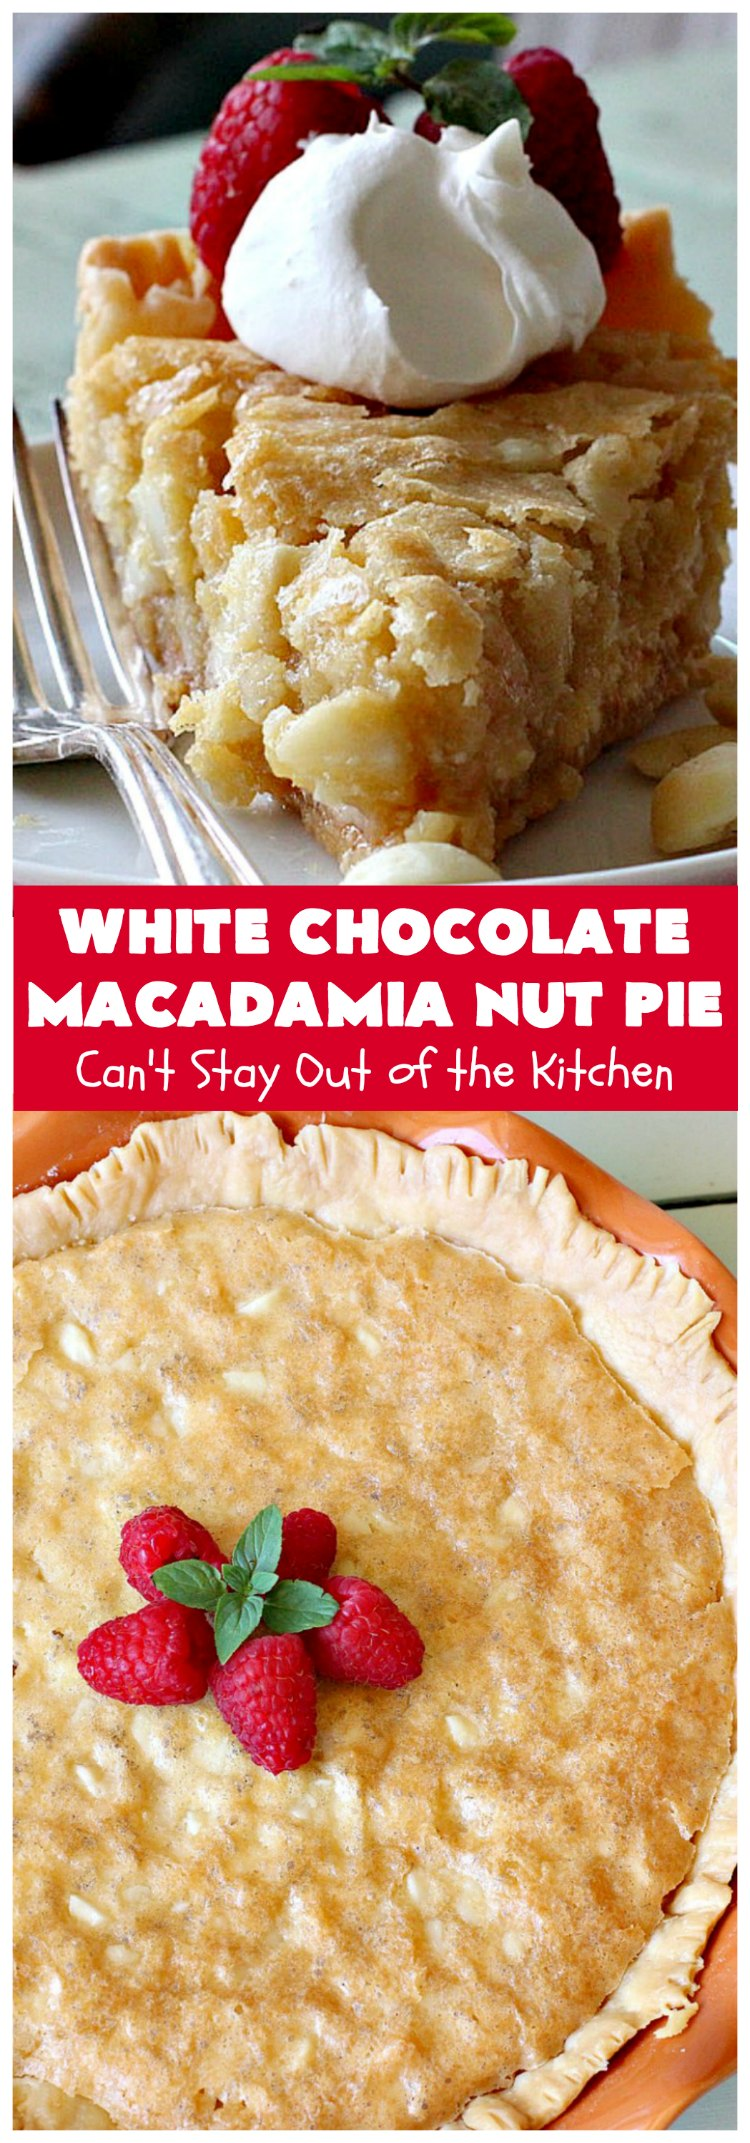 White Chocolate Macadamia Nut Pie | Can't Stay Out of the Kitchen